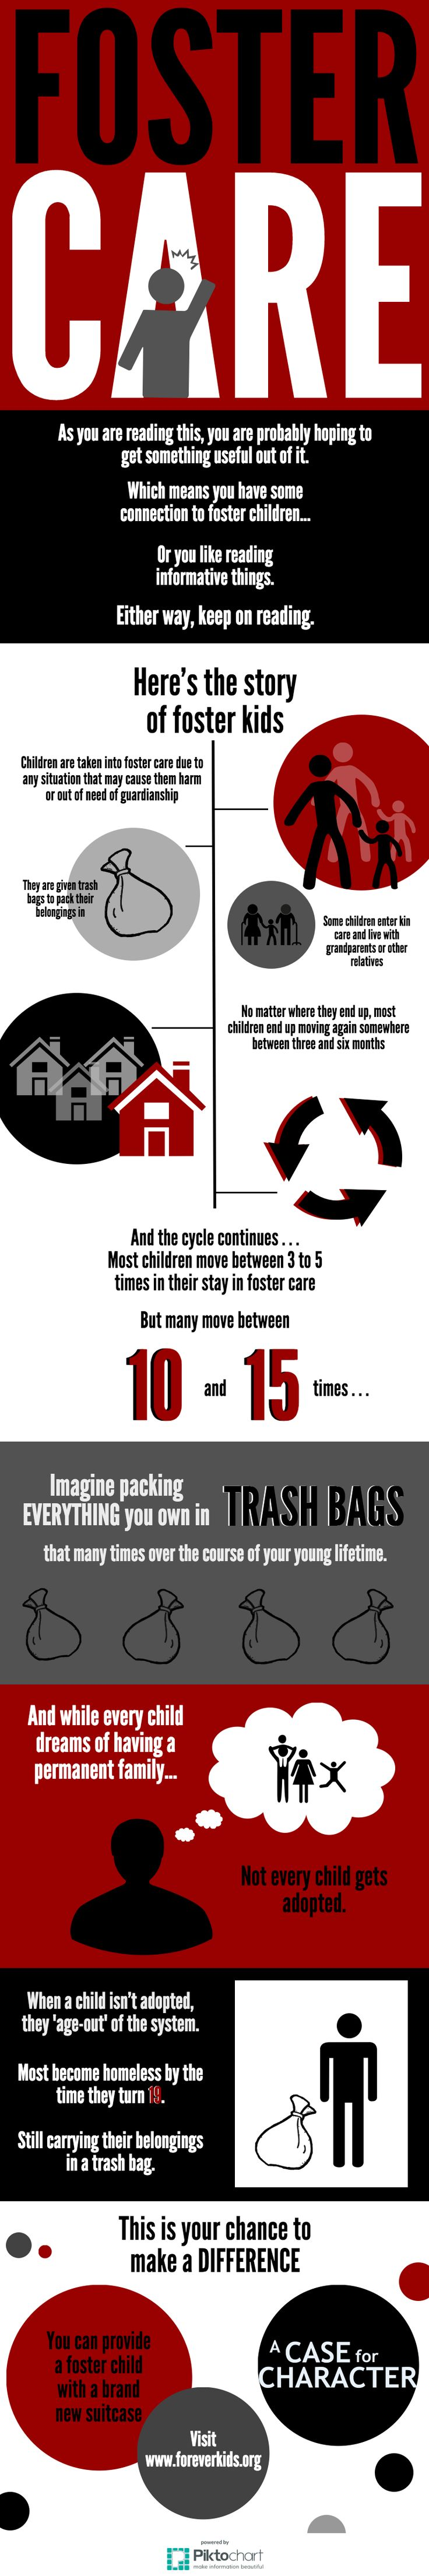 The story of a foster child is tragic... But YOU can make a difference in their story. Help to replace trash bags with brand new suitcases and give these kids dignity! Visit www.foreverkids.org to learn more on how you can help. #fostercare